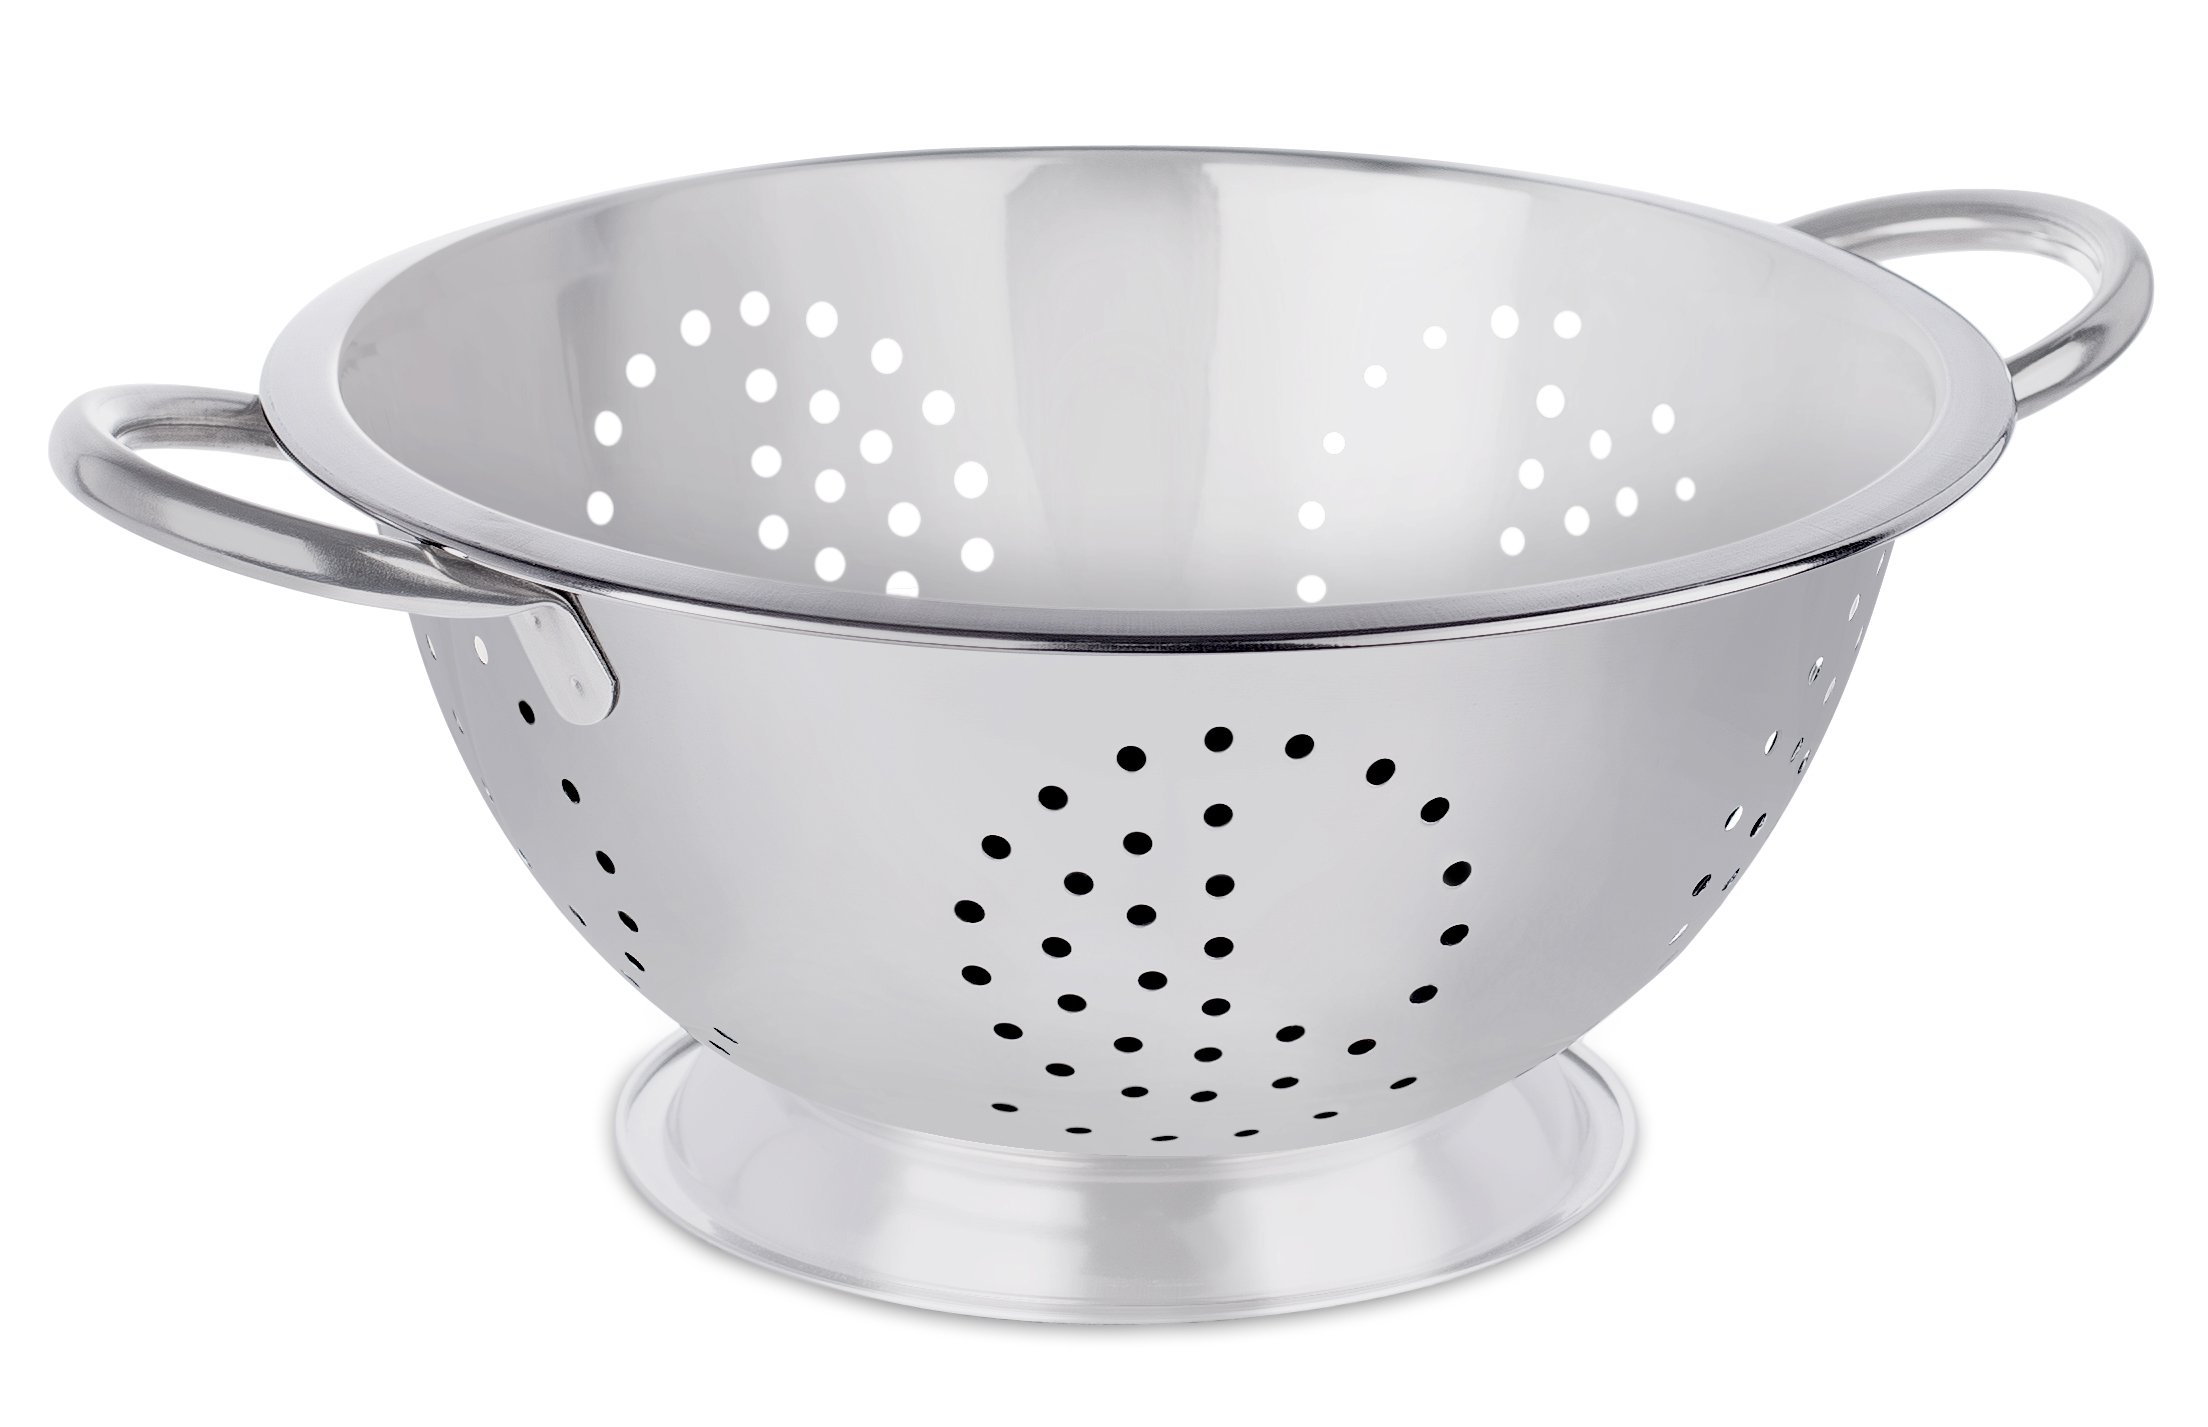 BirdRock Home Round Stainless Steel Colander | Self Draining Pasta Bowl | Kitchen Food Washing Strainer | Wide Grip Handles | Large